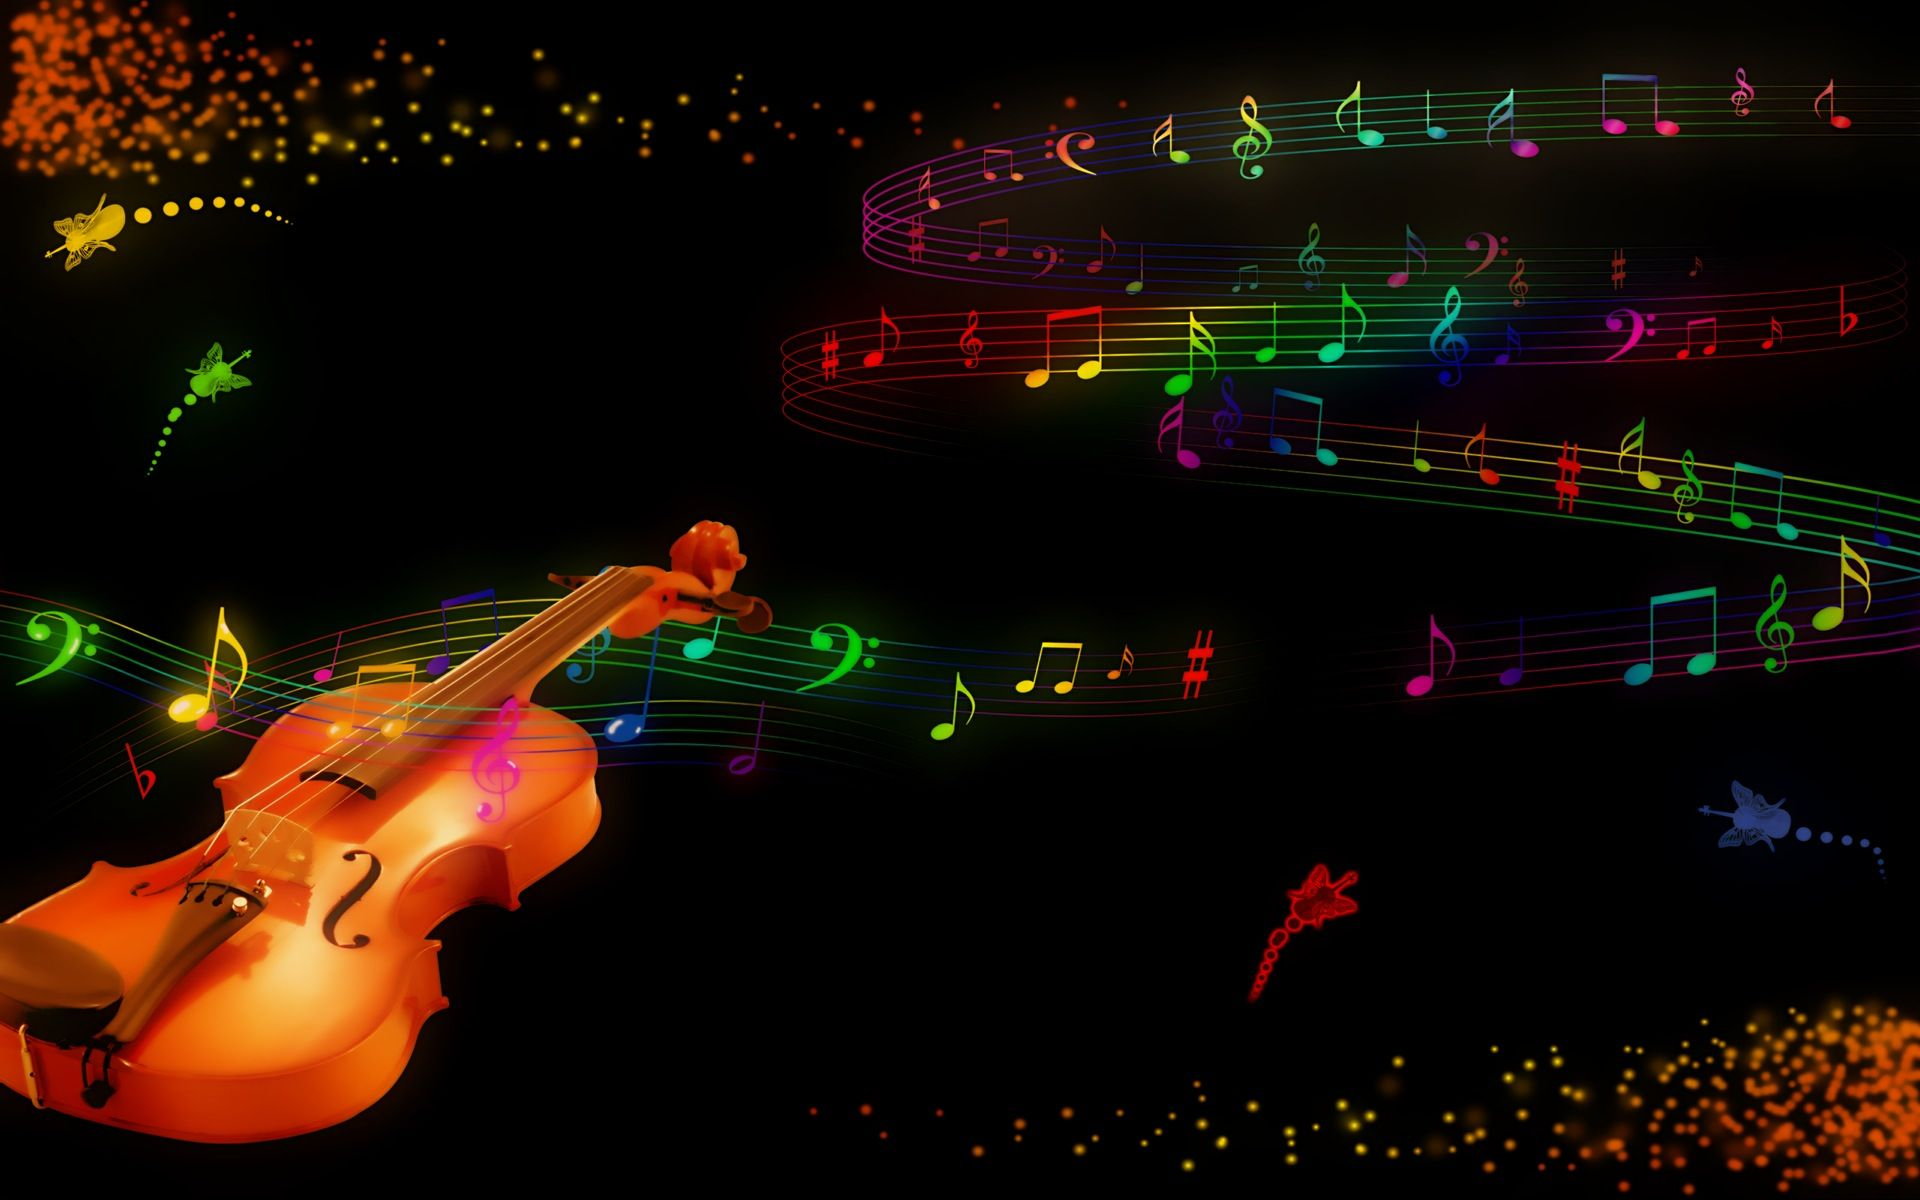 Rainbow Music Notes Background Hd Wallpaper Background Images: Abstract Rainbow Music Wallpaper Background #7gdhh